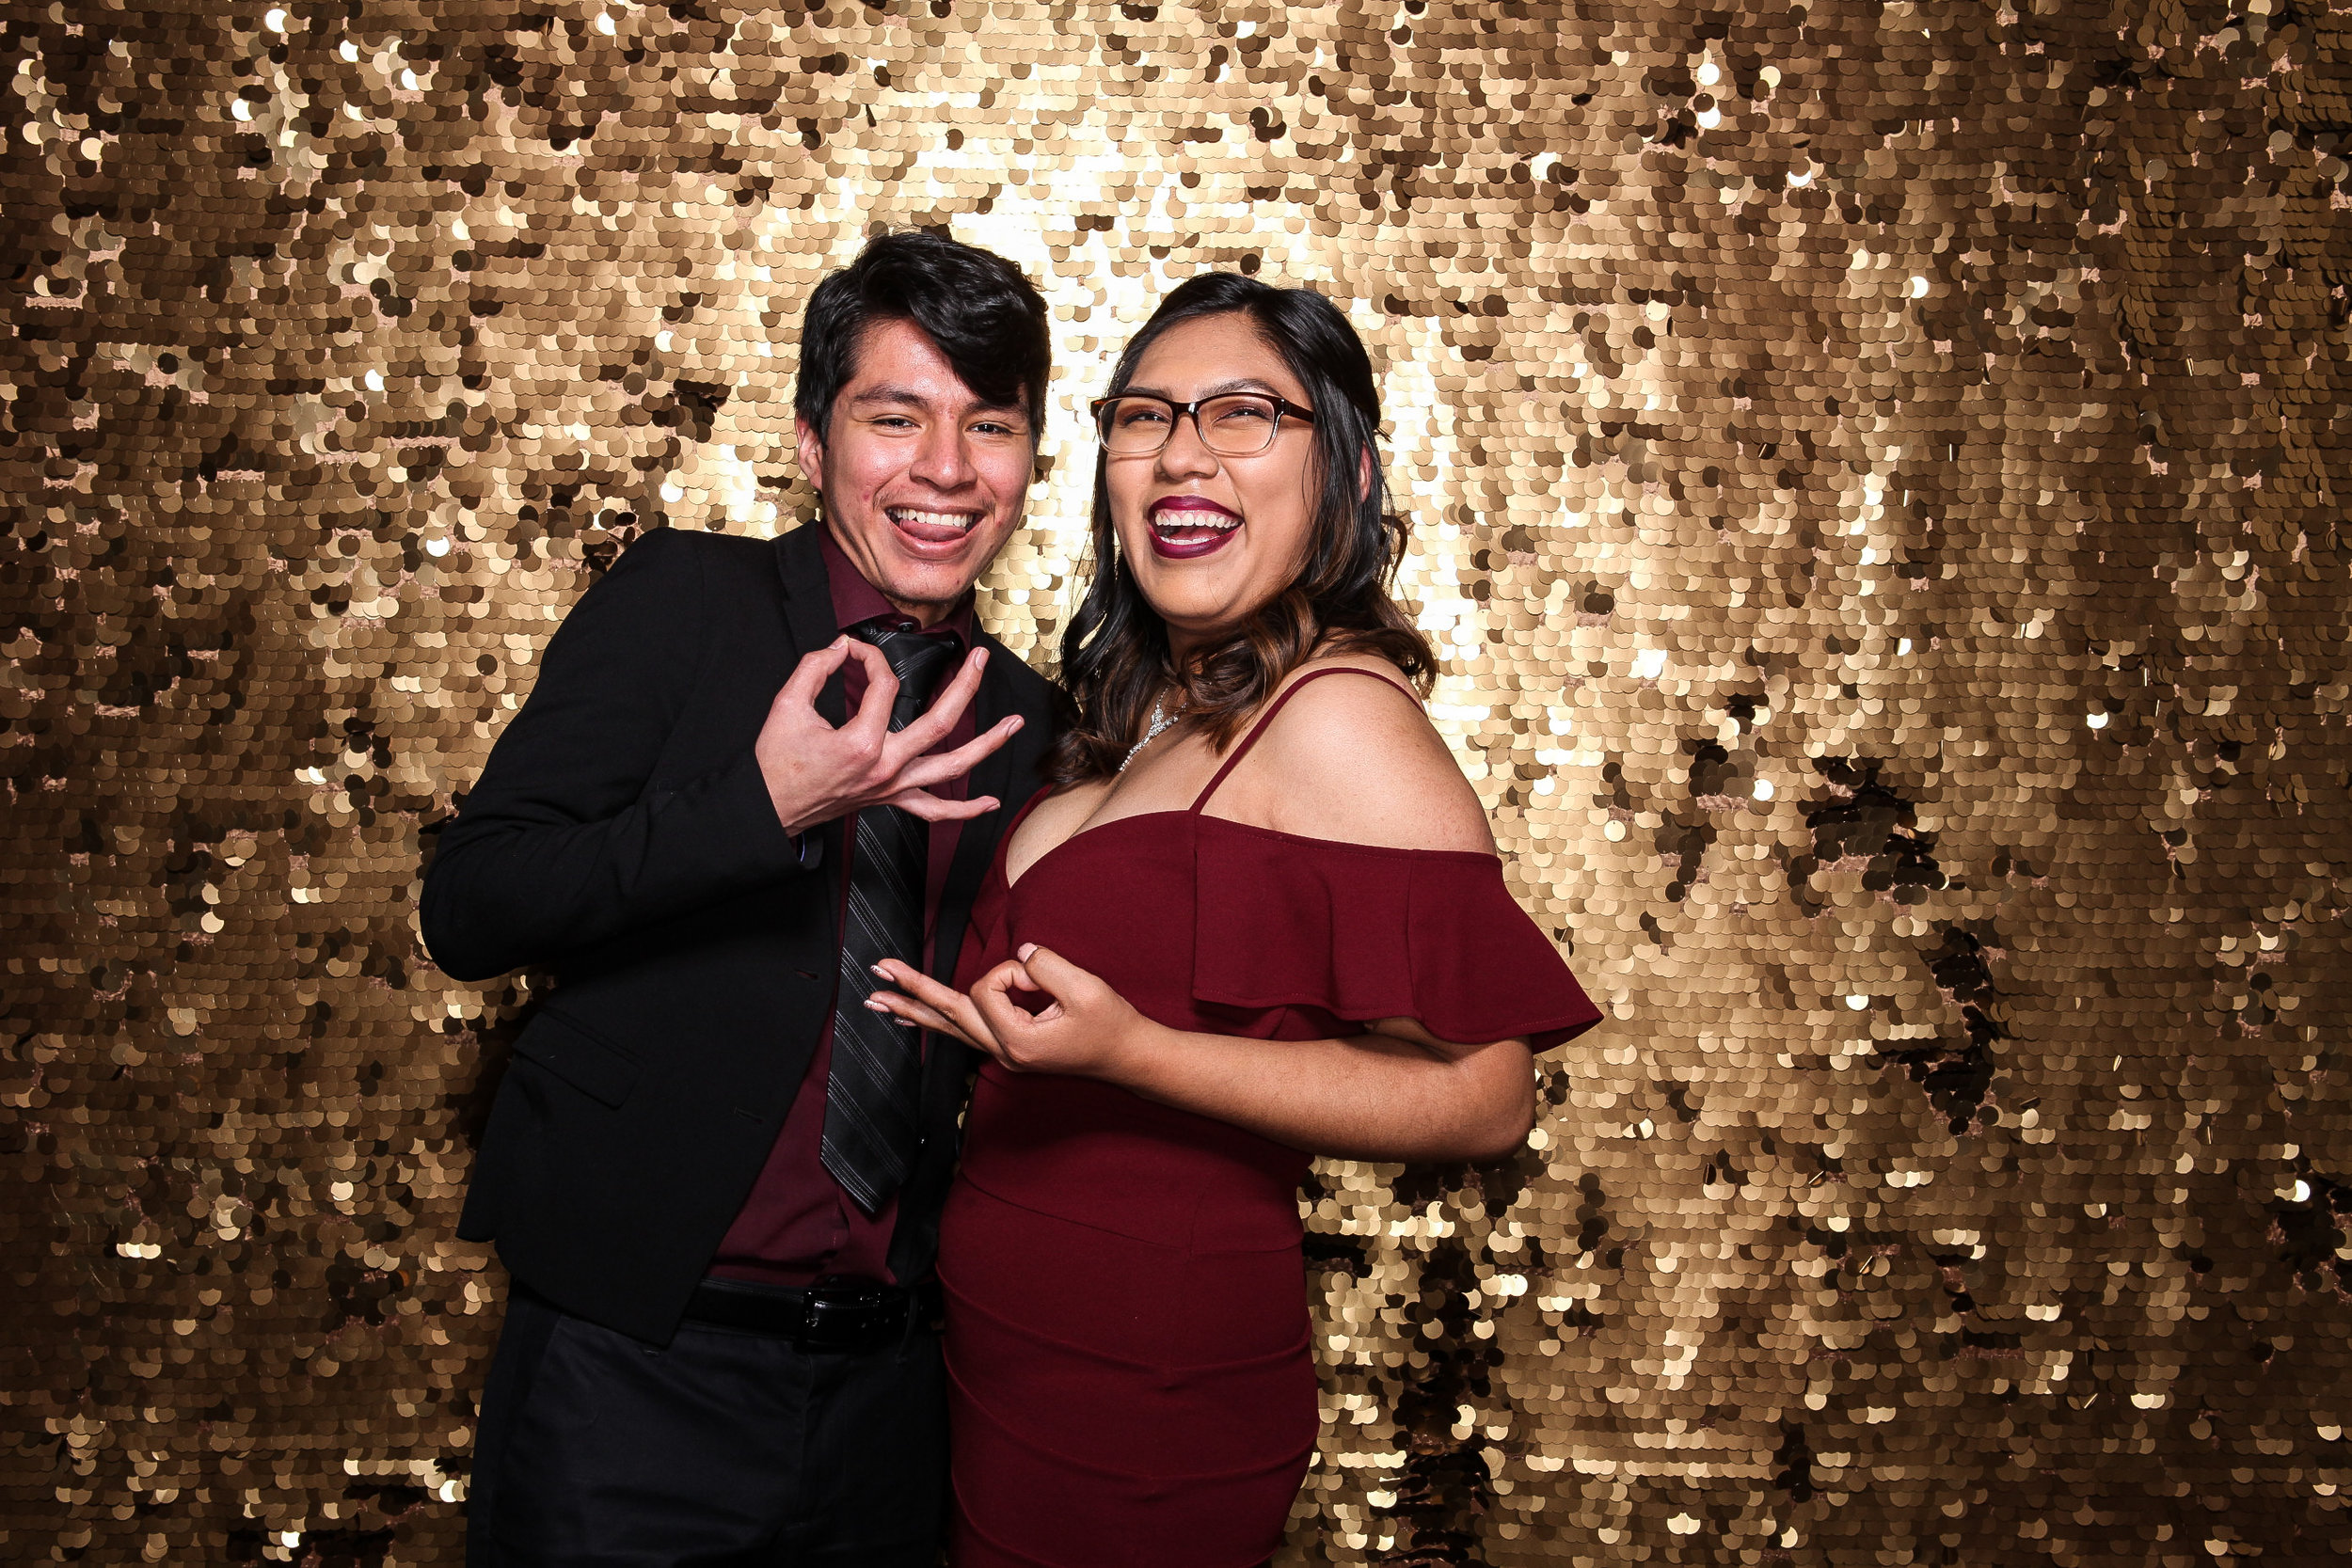 20190503_Adelphi_Senior_Formal-350.jpg